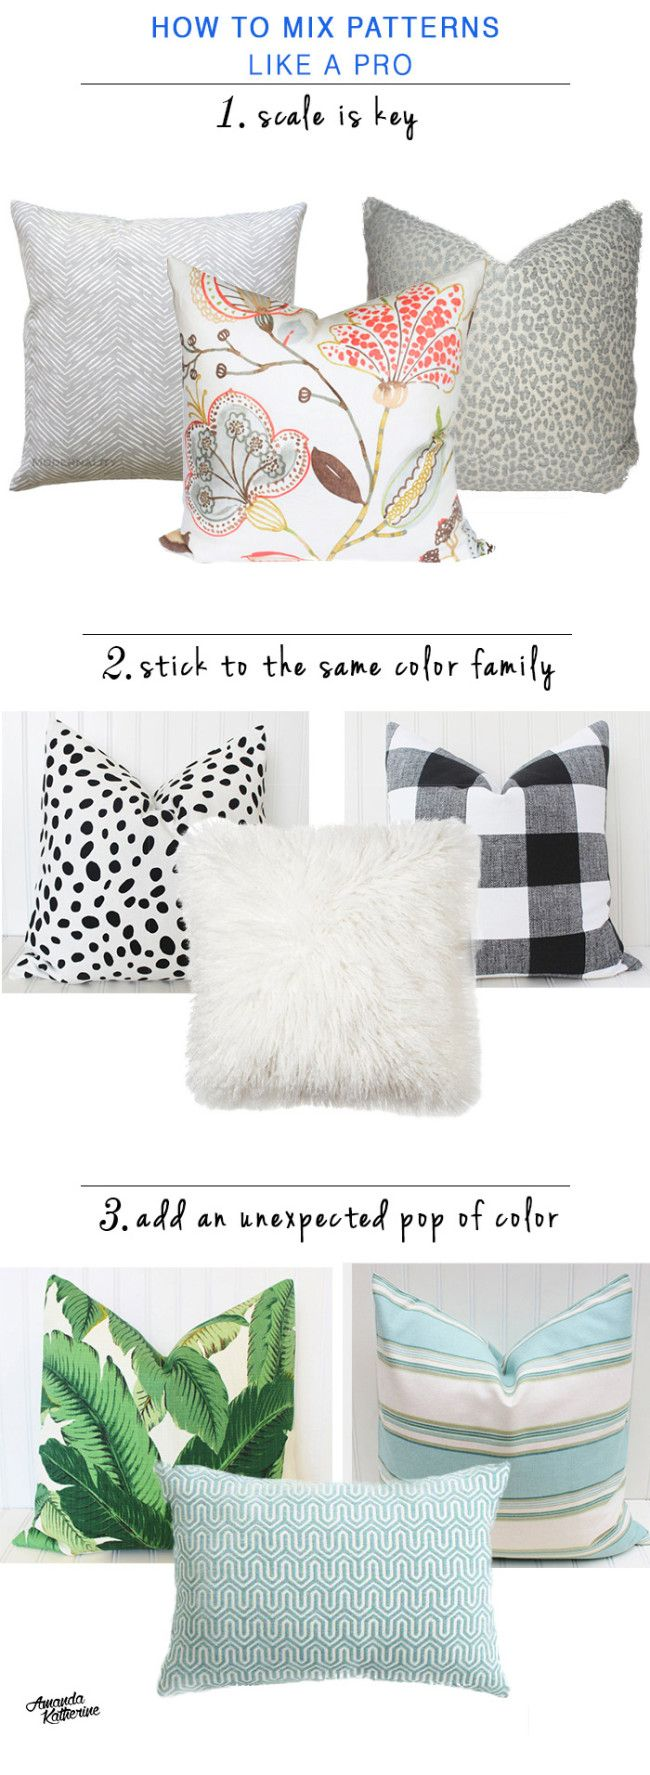 Use color and pattern in your home with confidence by following these 3 pro tips. It is possible to mix prints and patterns without looking overwhelming. http://www.amandakatherine.com/how-to-mix-patterns-like-a-pro/